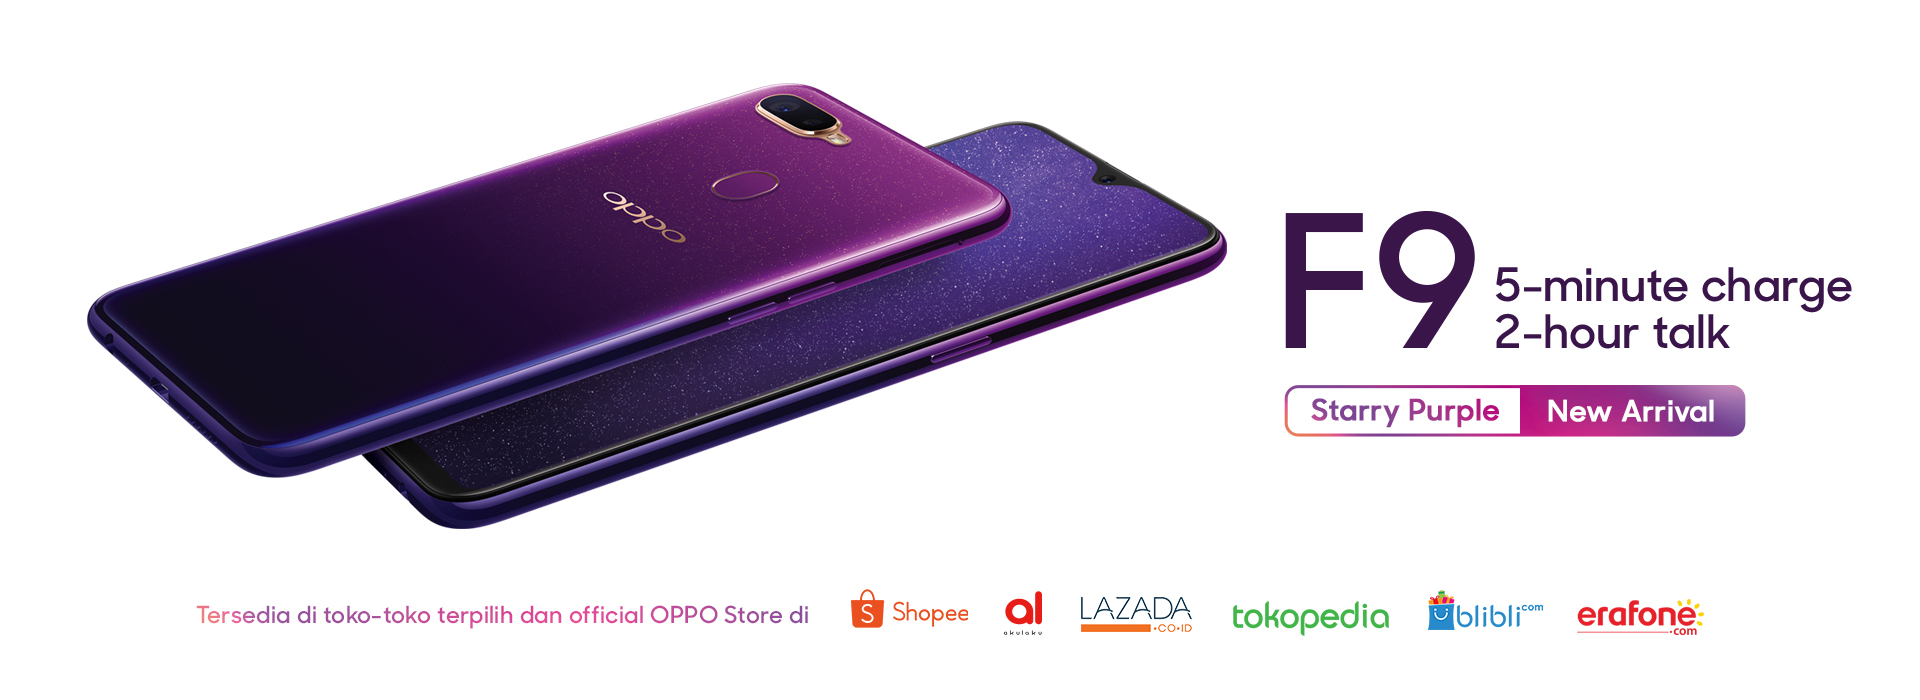 Oppo F9 Starry Purple 5 Minute Charge 2 Hour Talk Indonesia A3s Ungu Learn More About